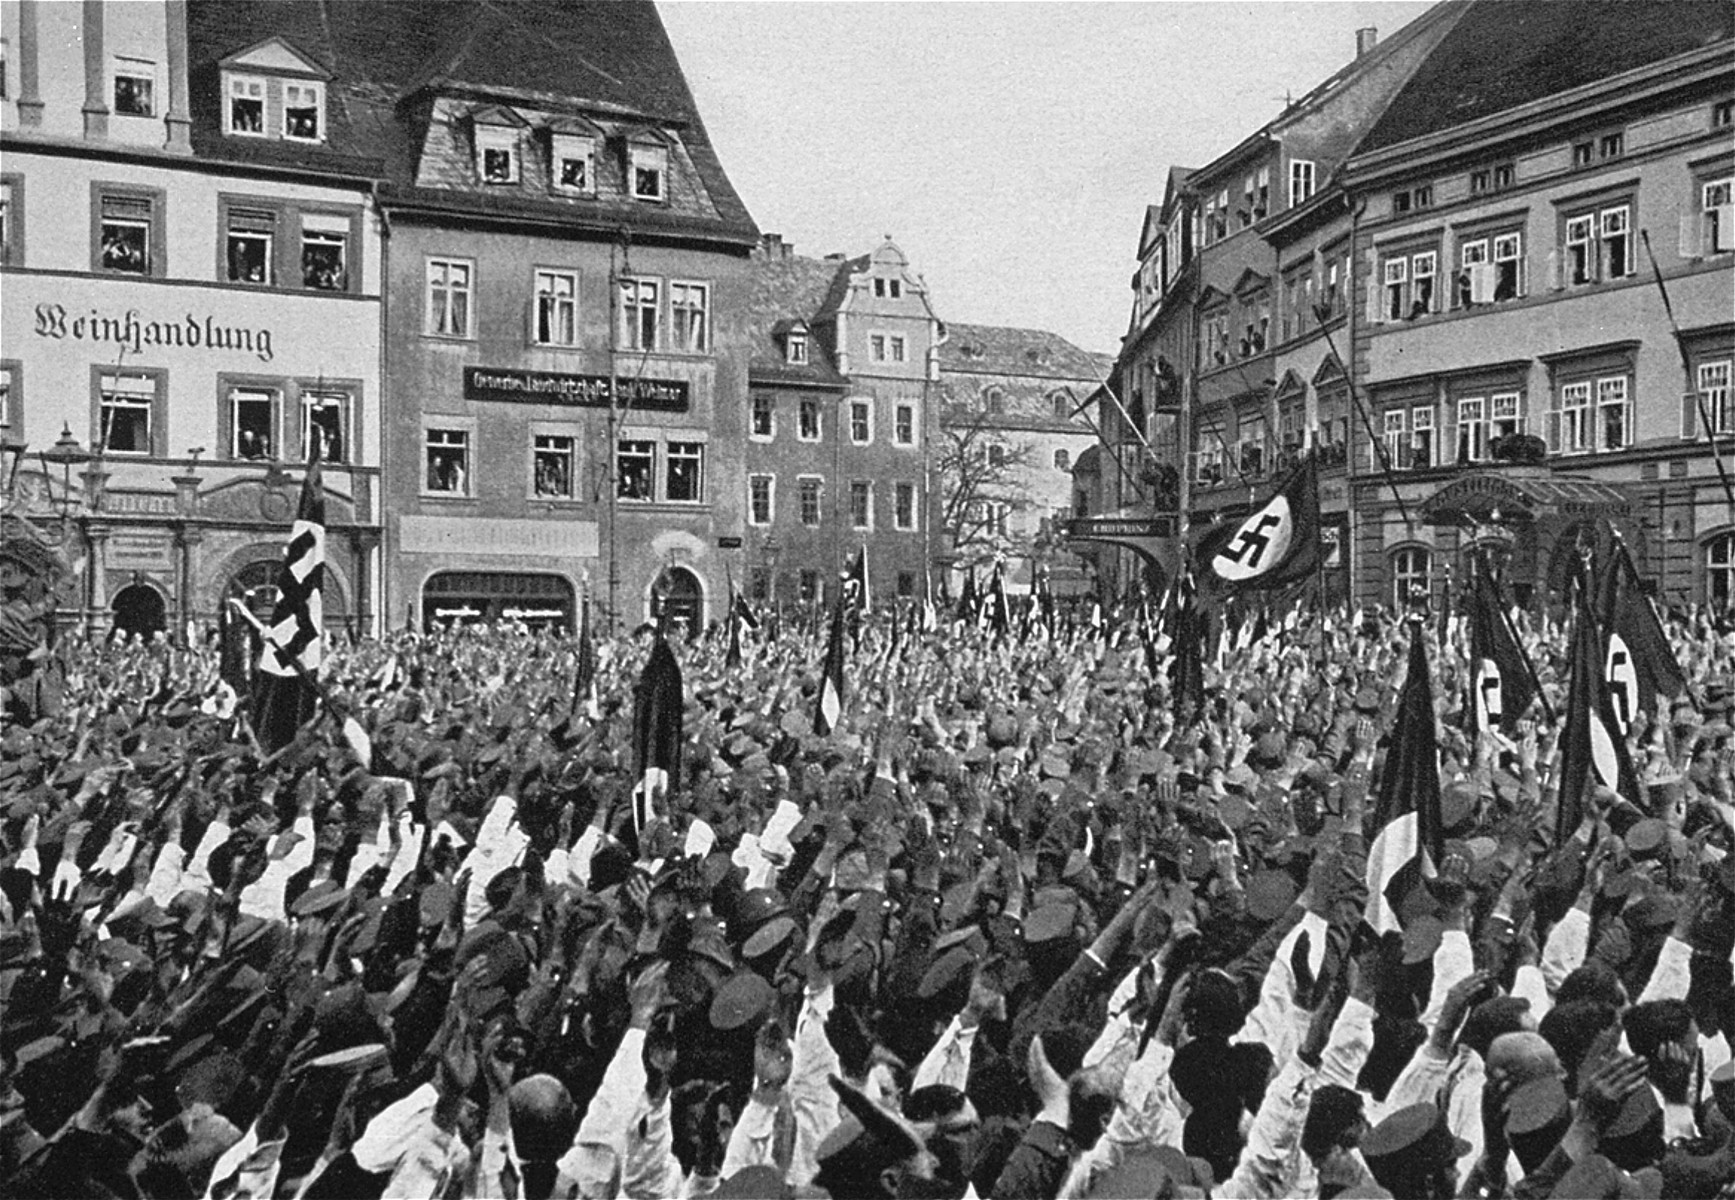 A Nazi rally in Weimar.